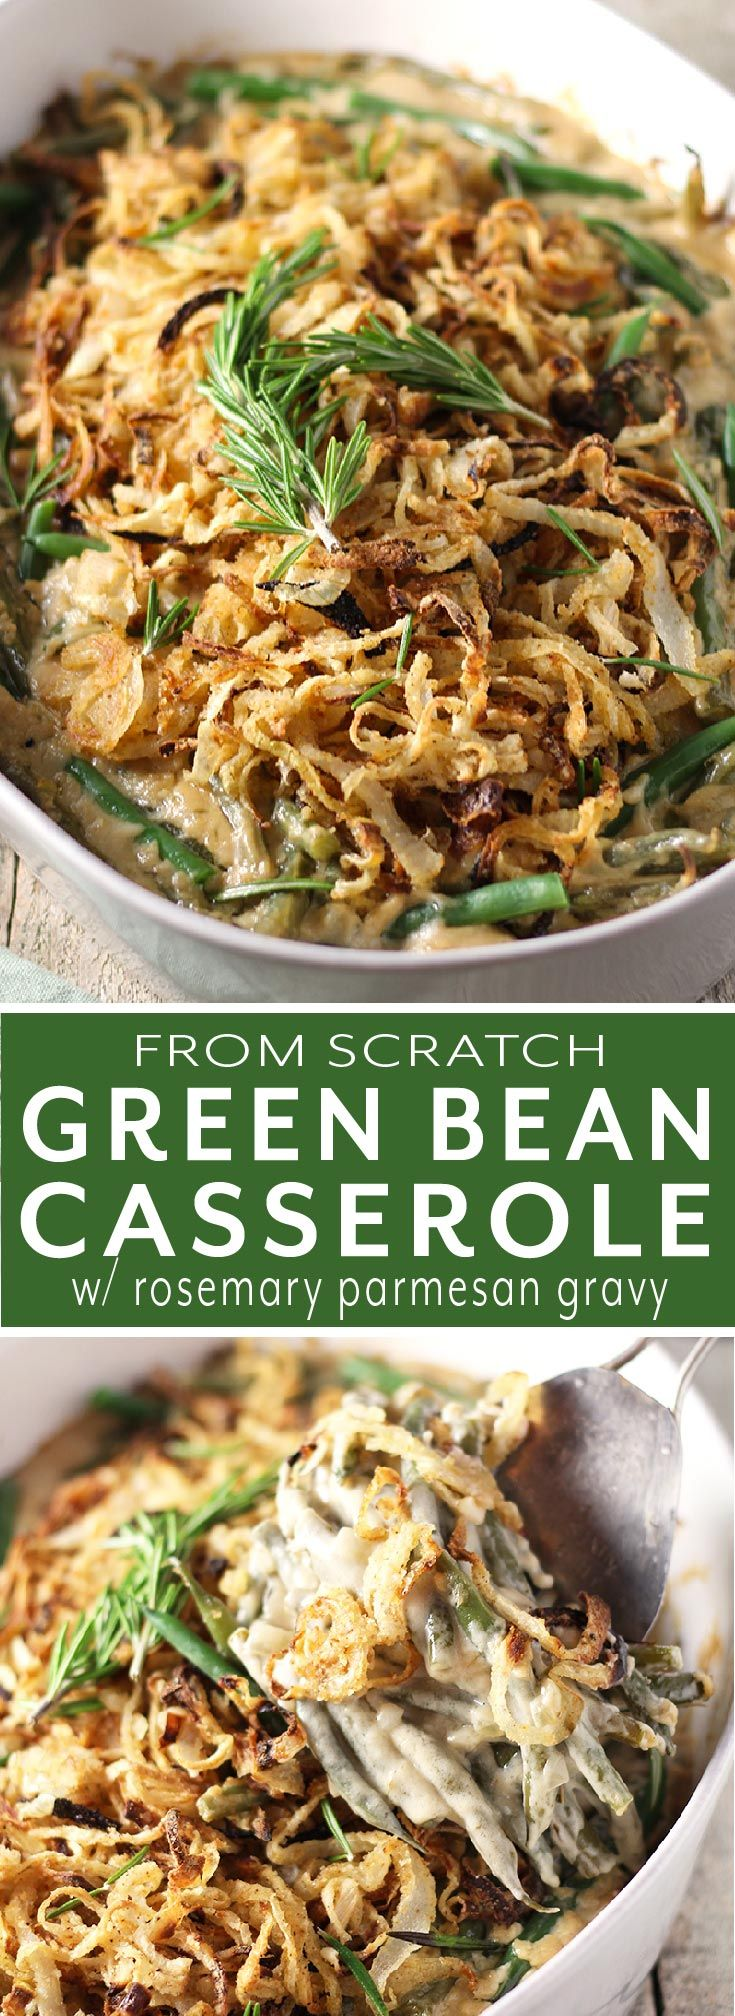 Green Bean Casserole with Rosemary Parmesan Gravy | Modern Farmhouse Eats #greenbeancasserole